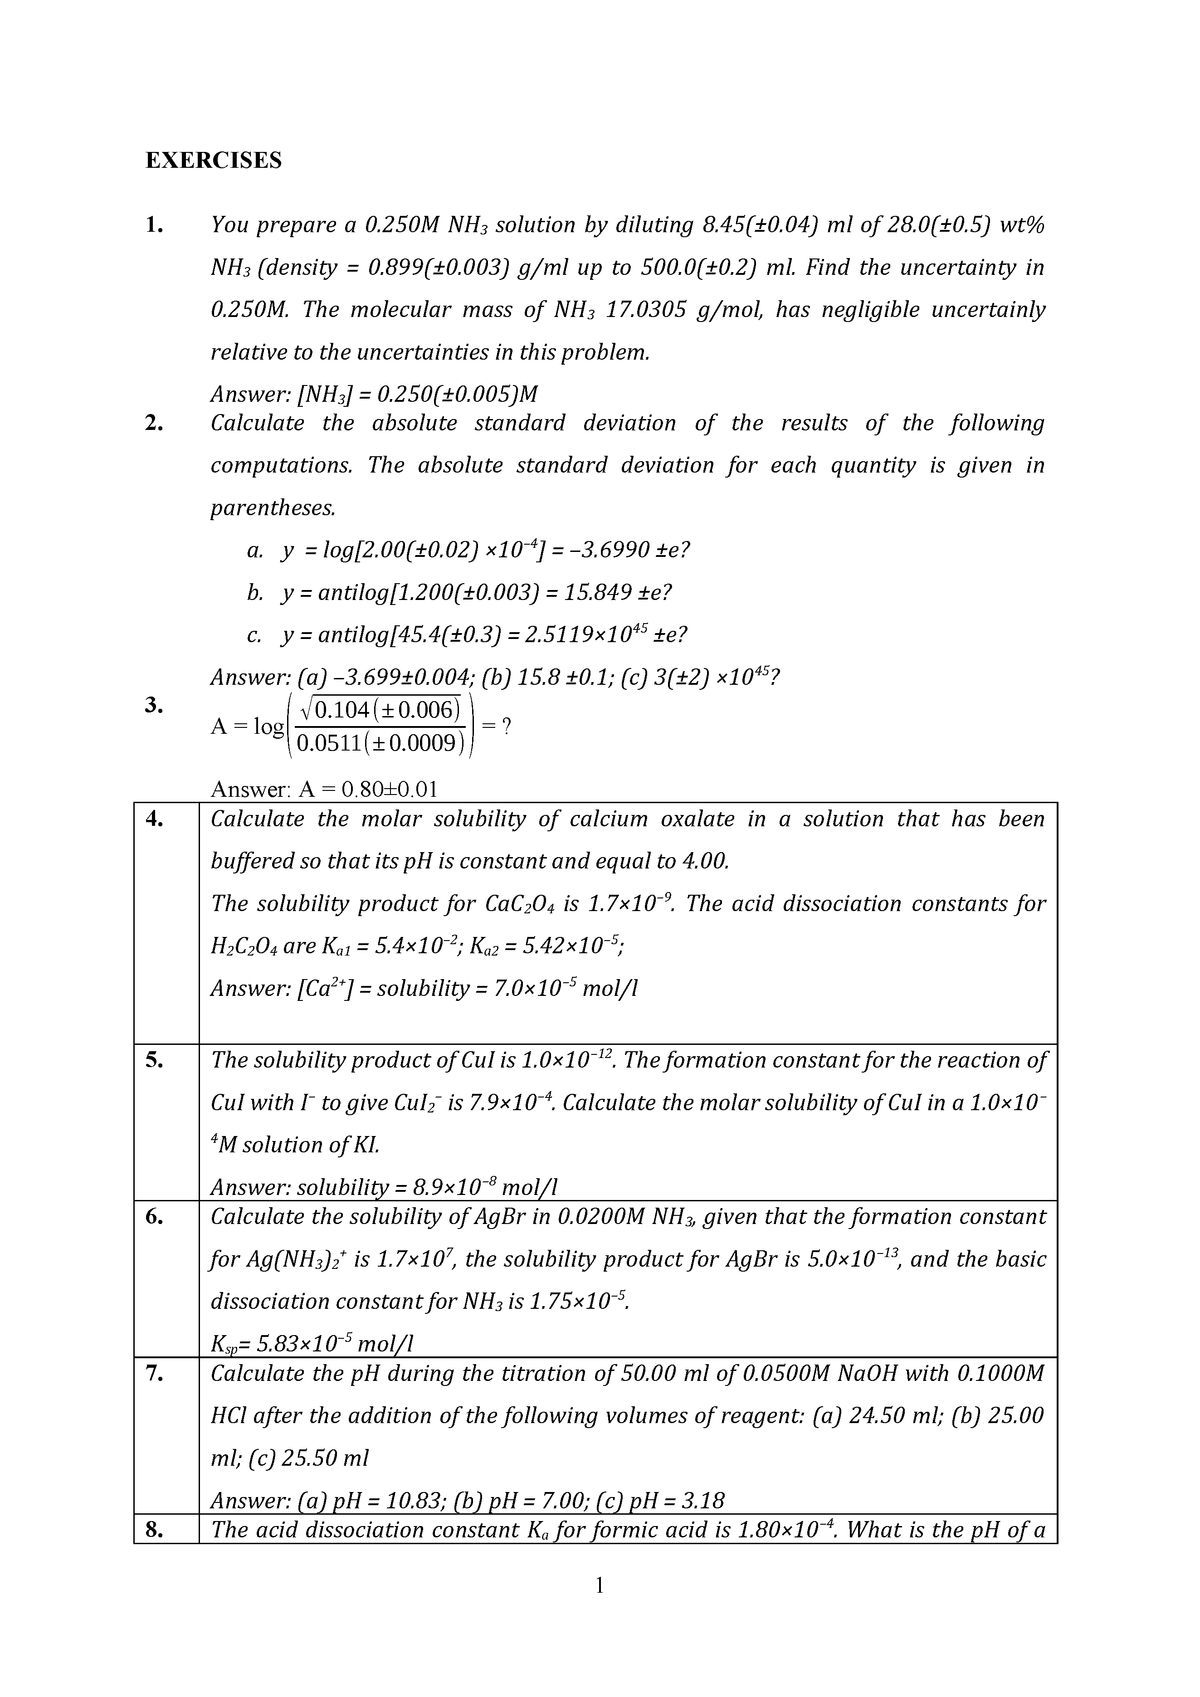 Exercises for analytical chemistry about titration - CHEM 217